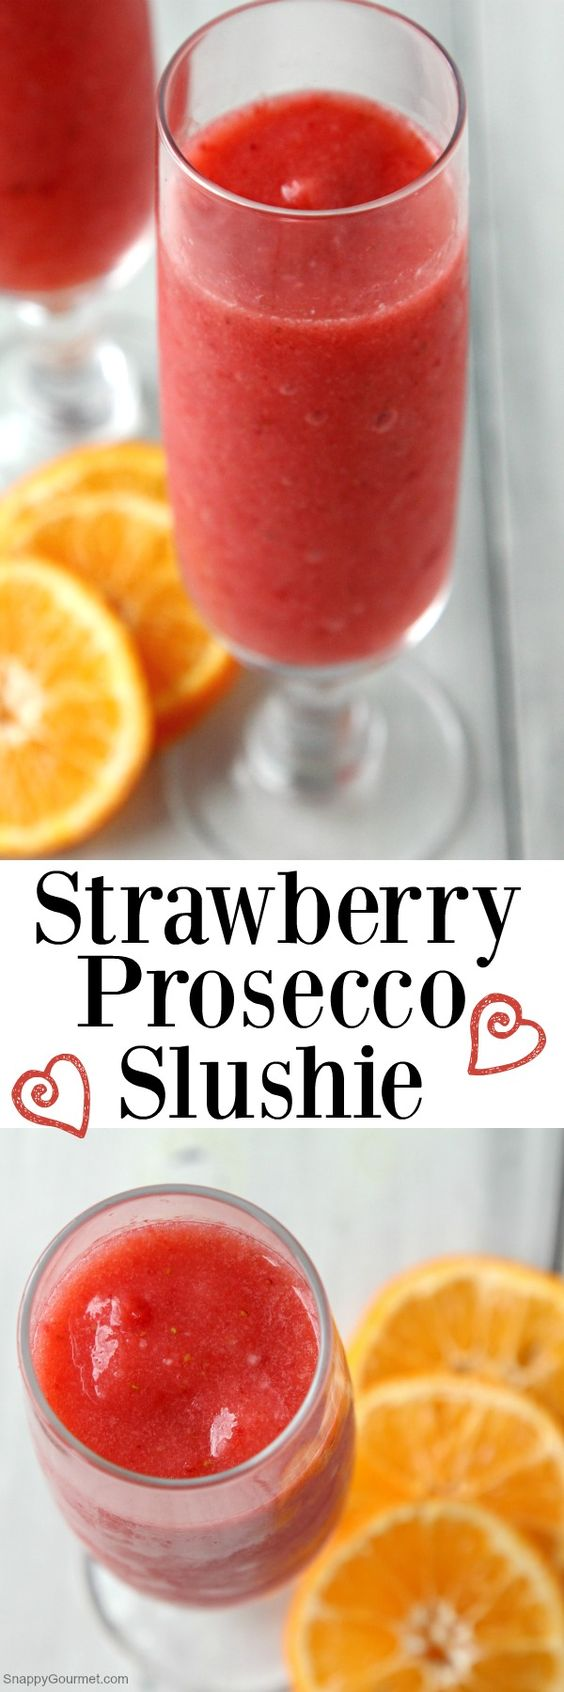 Strawberry Prosecco Slushie recipe, the best easy frozen wine cocktail! SnappyGourmet.com (ad)